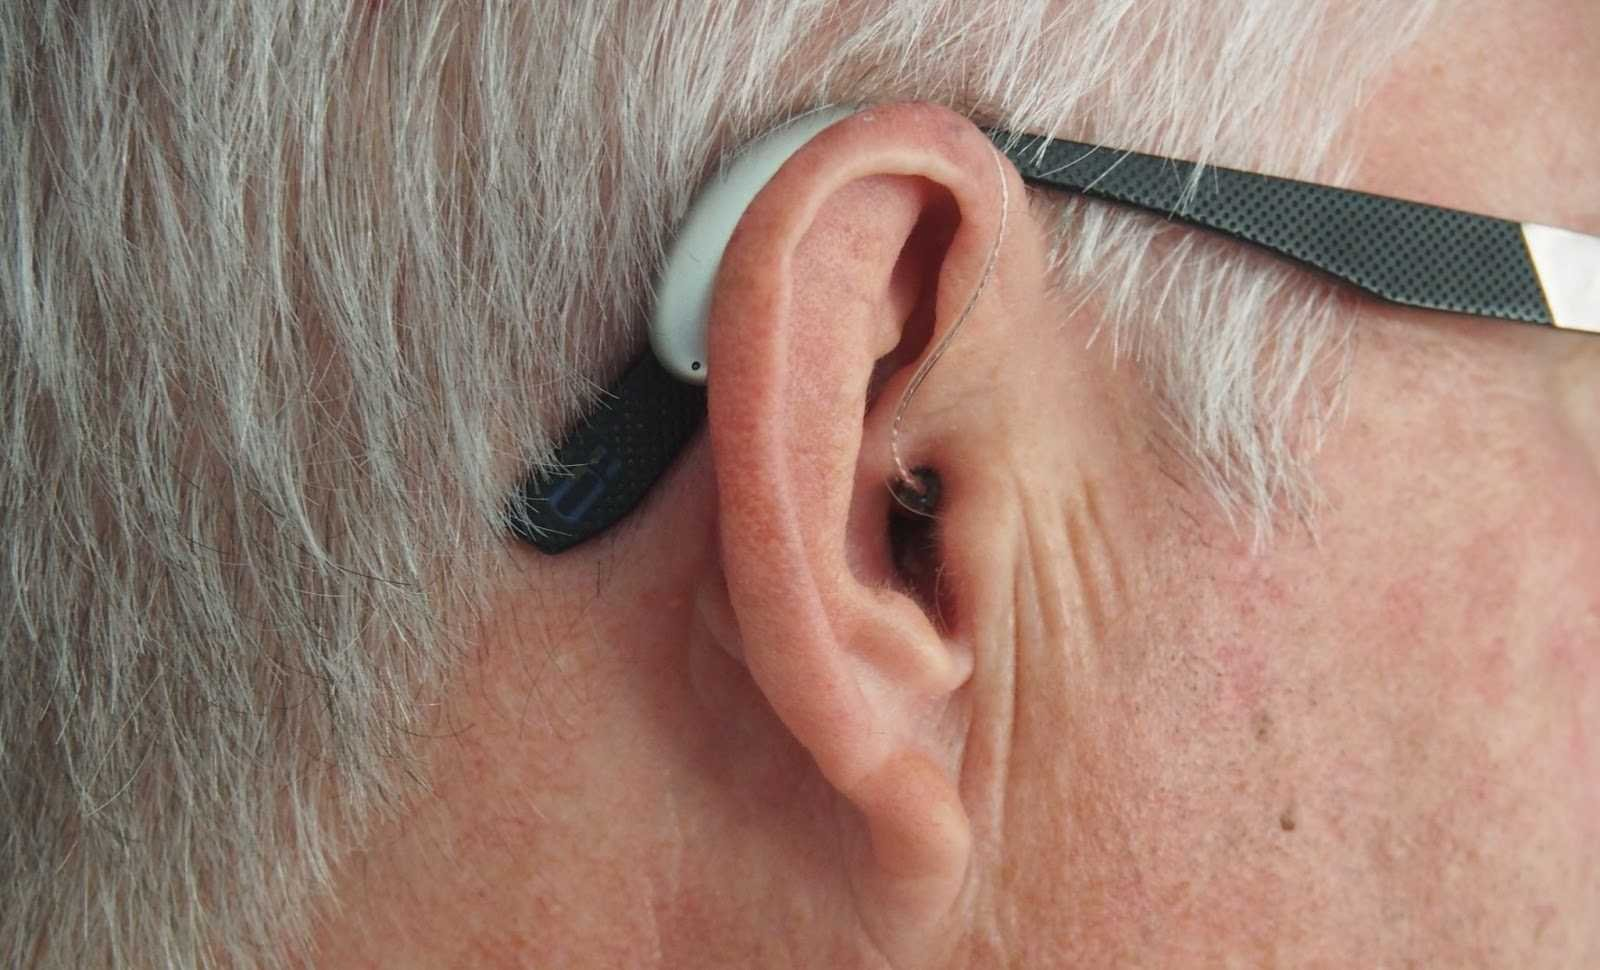 VA Disability for Hearing Loss: Ratings and Compensation